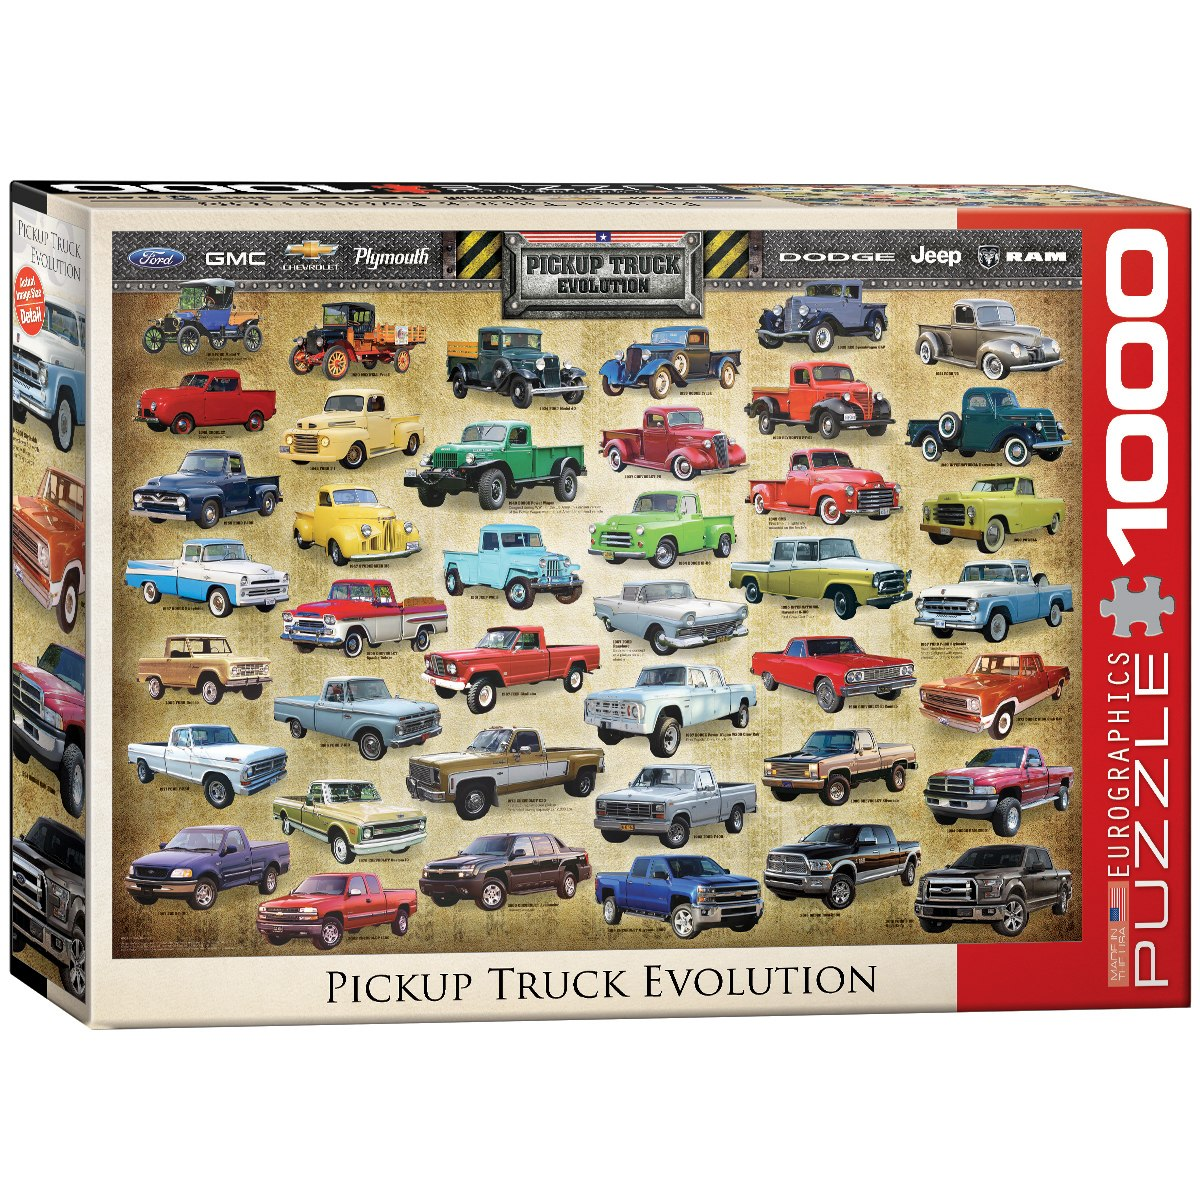 Pickup Truck Evolution - 1000pc Jigsaw Puzzle by Eurographics